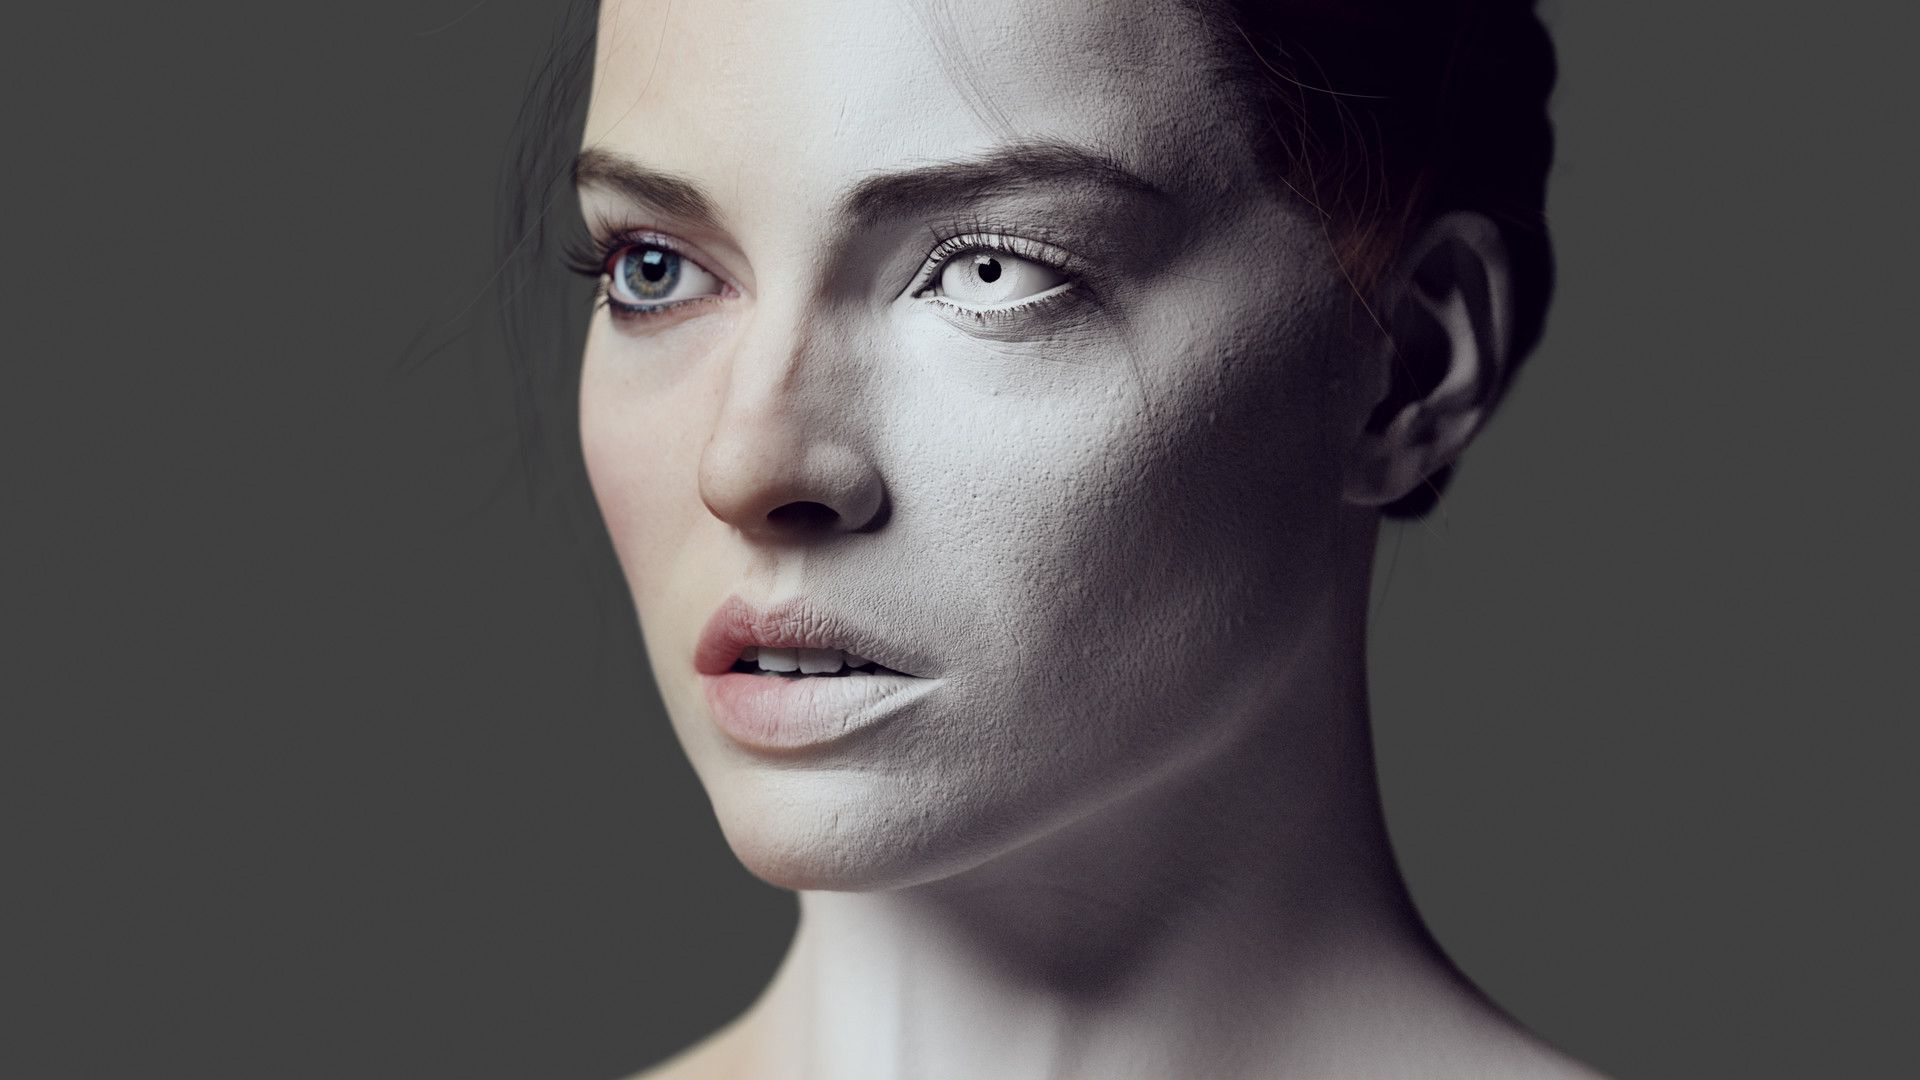 Animation No Scans Or Likeness Attemptulped In Zbrush, Textures In  Mari, Xgen Hair